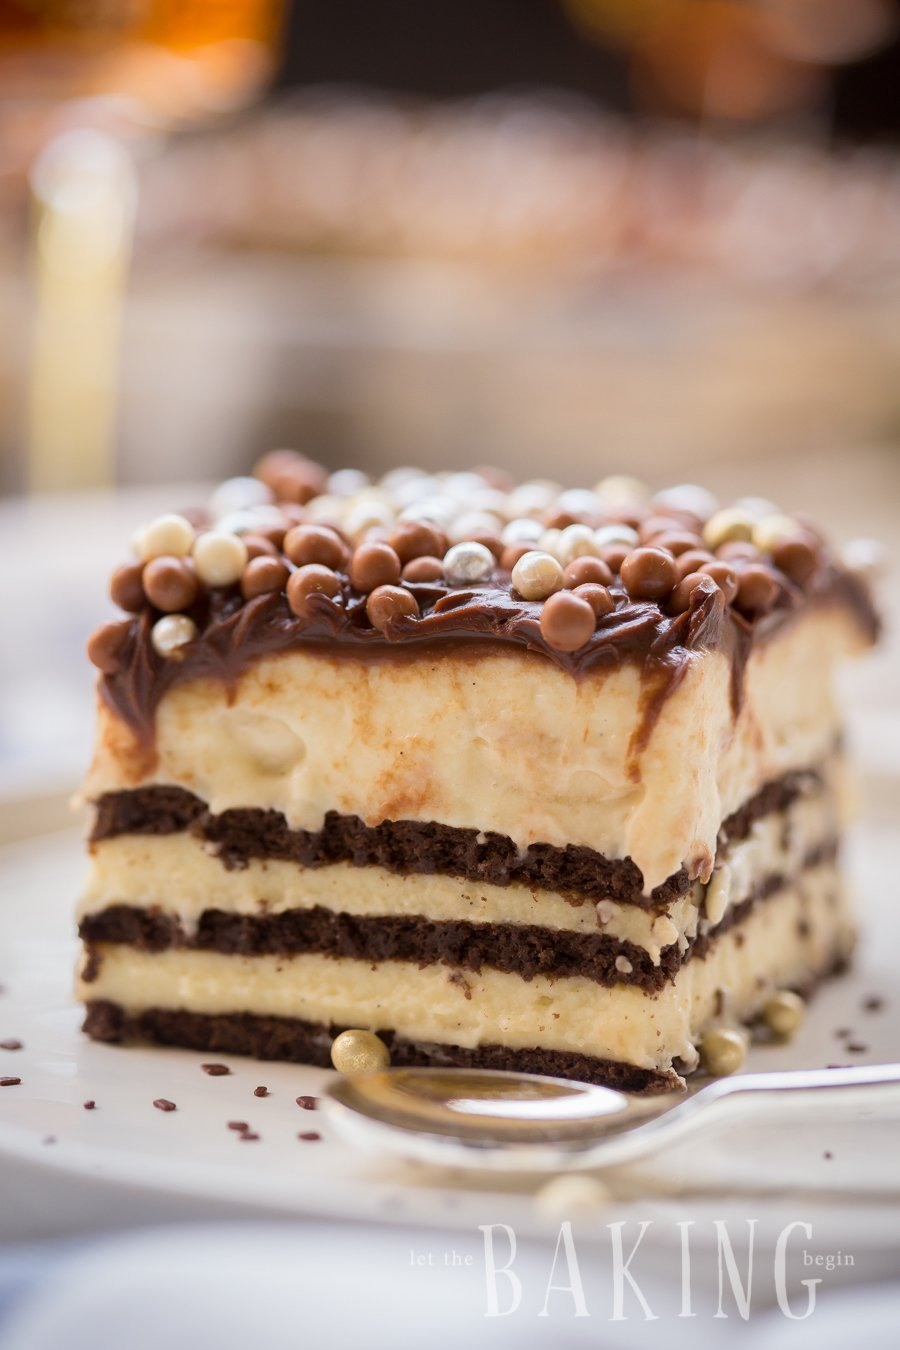 Chocolate Banana No Bake Custard Cake - Perfect no bake dessert filled with creamy custard and prebaked cookie layers. The banana adds nice creaminess, while the Crispearls give it some crunch. | Let the Baking Begin!